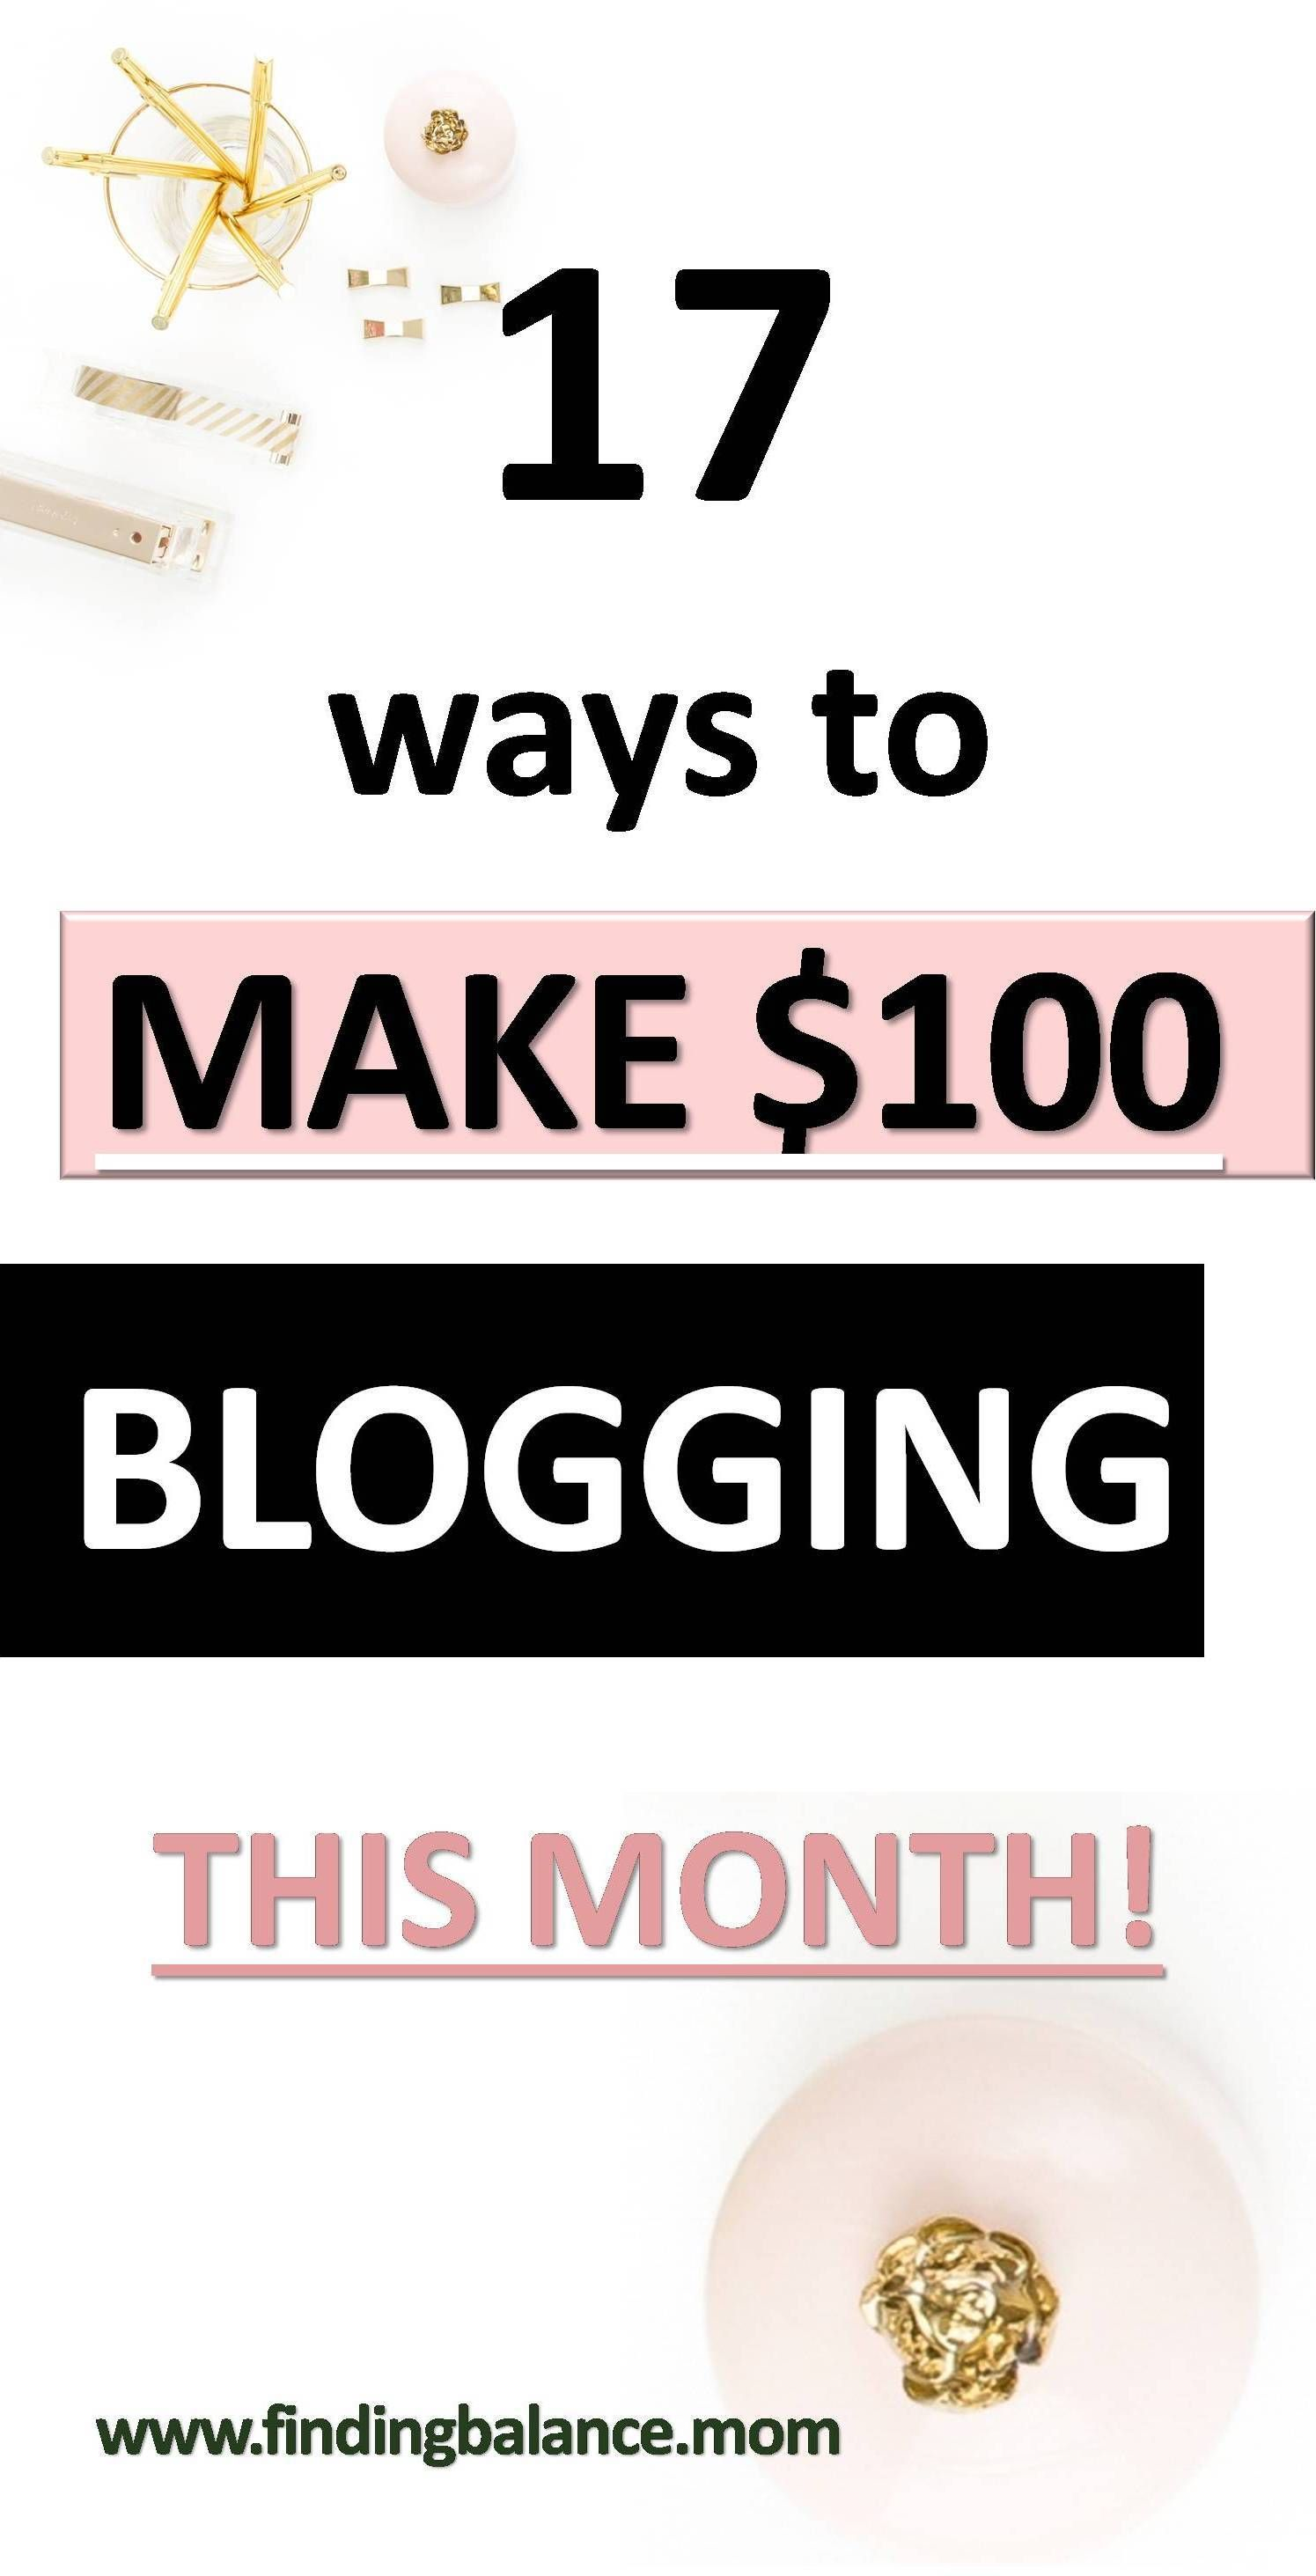 FBM  Make Money Blogging Smarter is part of Fbm Make Money Blogging Smarter Findingbalance Mom - You deserve a life that lets you raise kids + dreams on your terms! Find balance by blogging smarter so you can make money blogging with proven methods